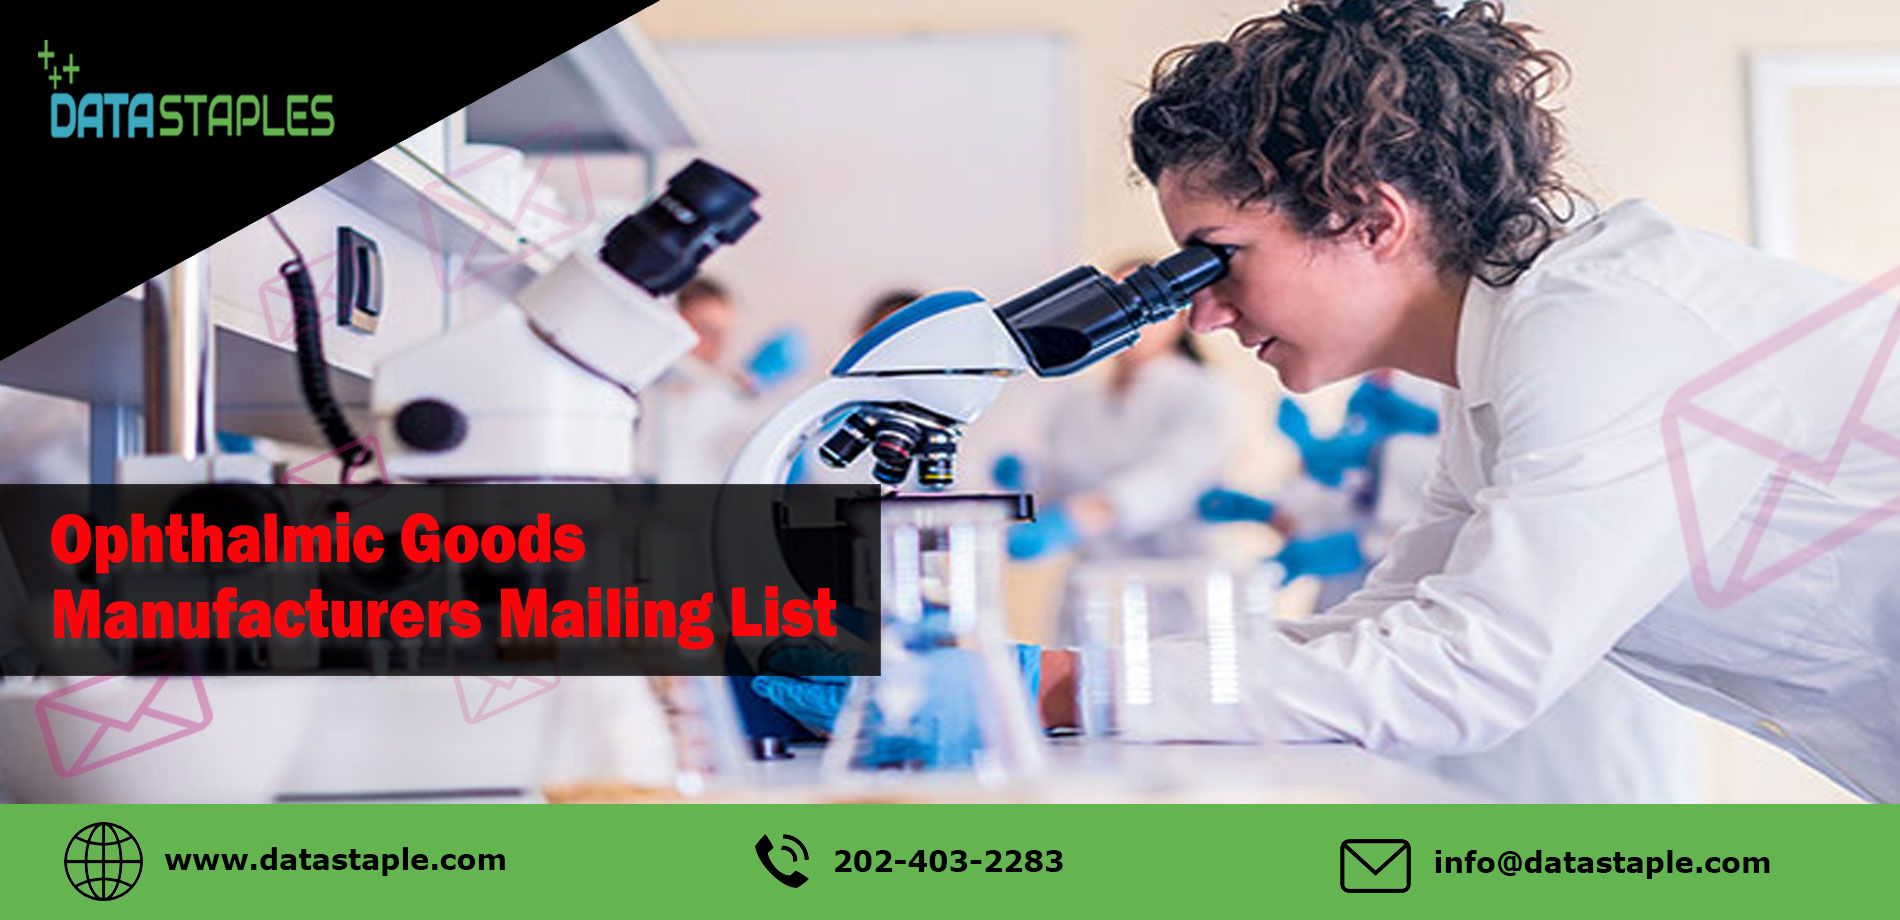 Opthalmic Goods Manufacturers Mailing List | DataStaples